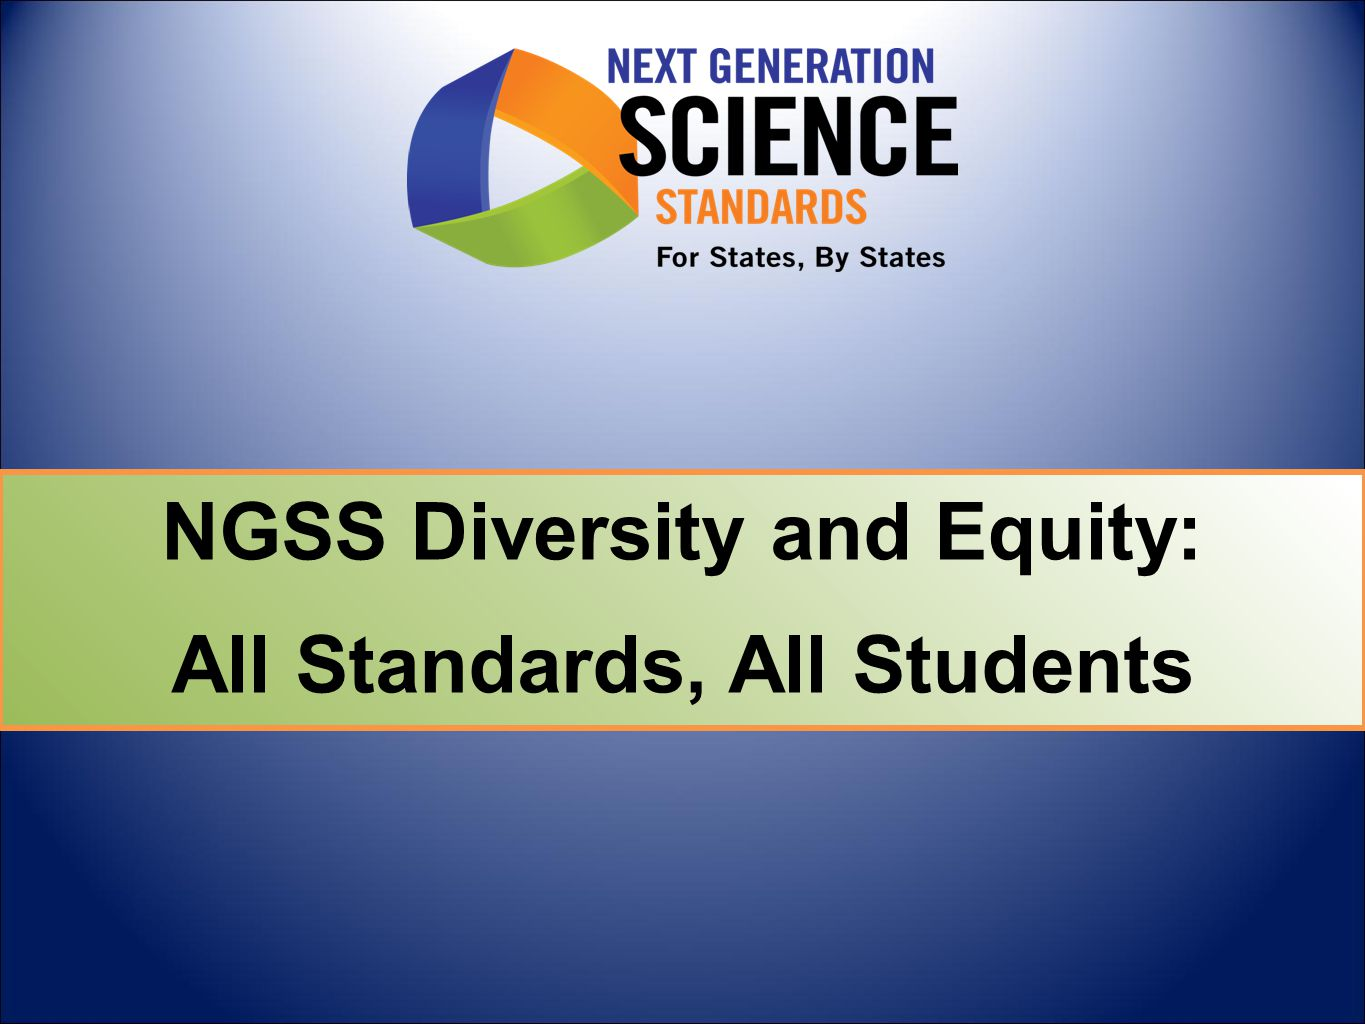 NGSS Diversity and Equity: All Standards, All Students